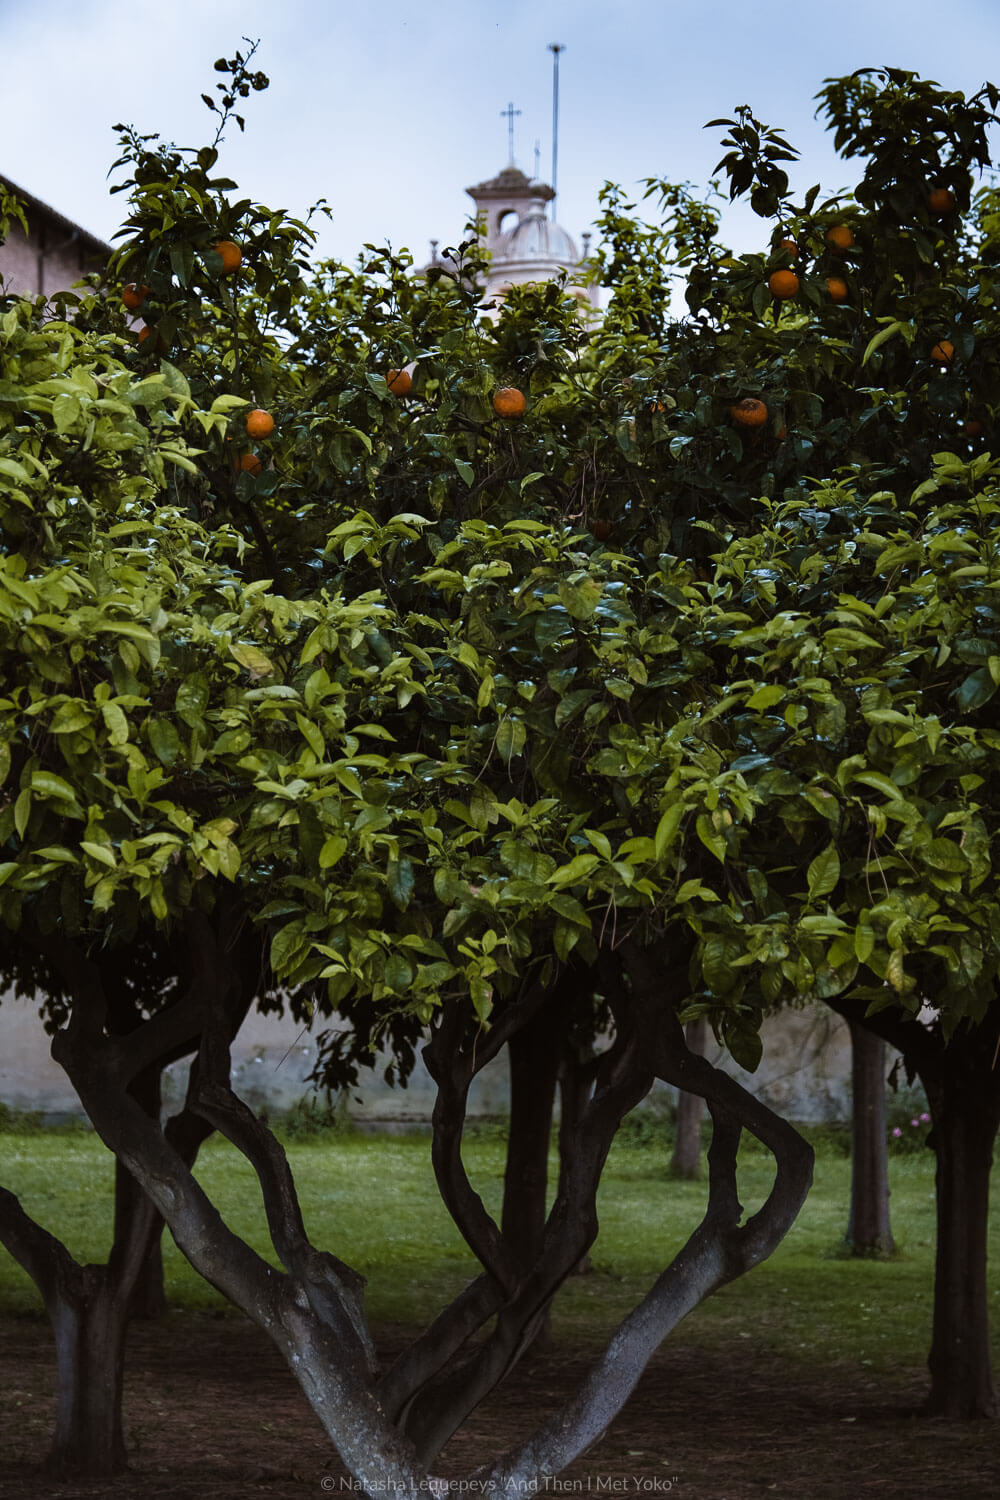 """Orange trees in the Orange Garden in Rome, Italy. Travel photography and guide by © Natasha Lequepeys for """"And Then I Met Yoko"""". #rome #italy #travelblog #travelphotography"""